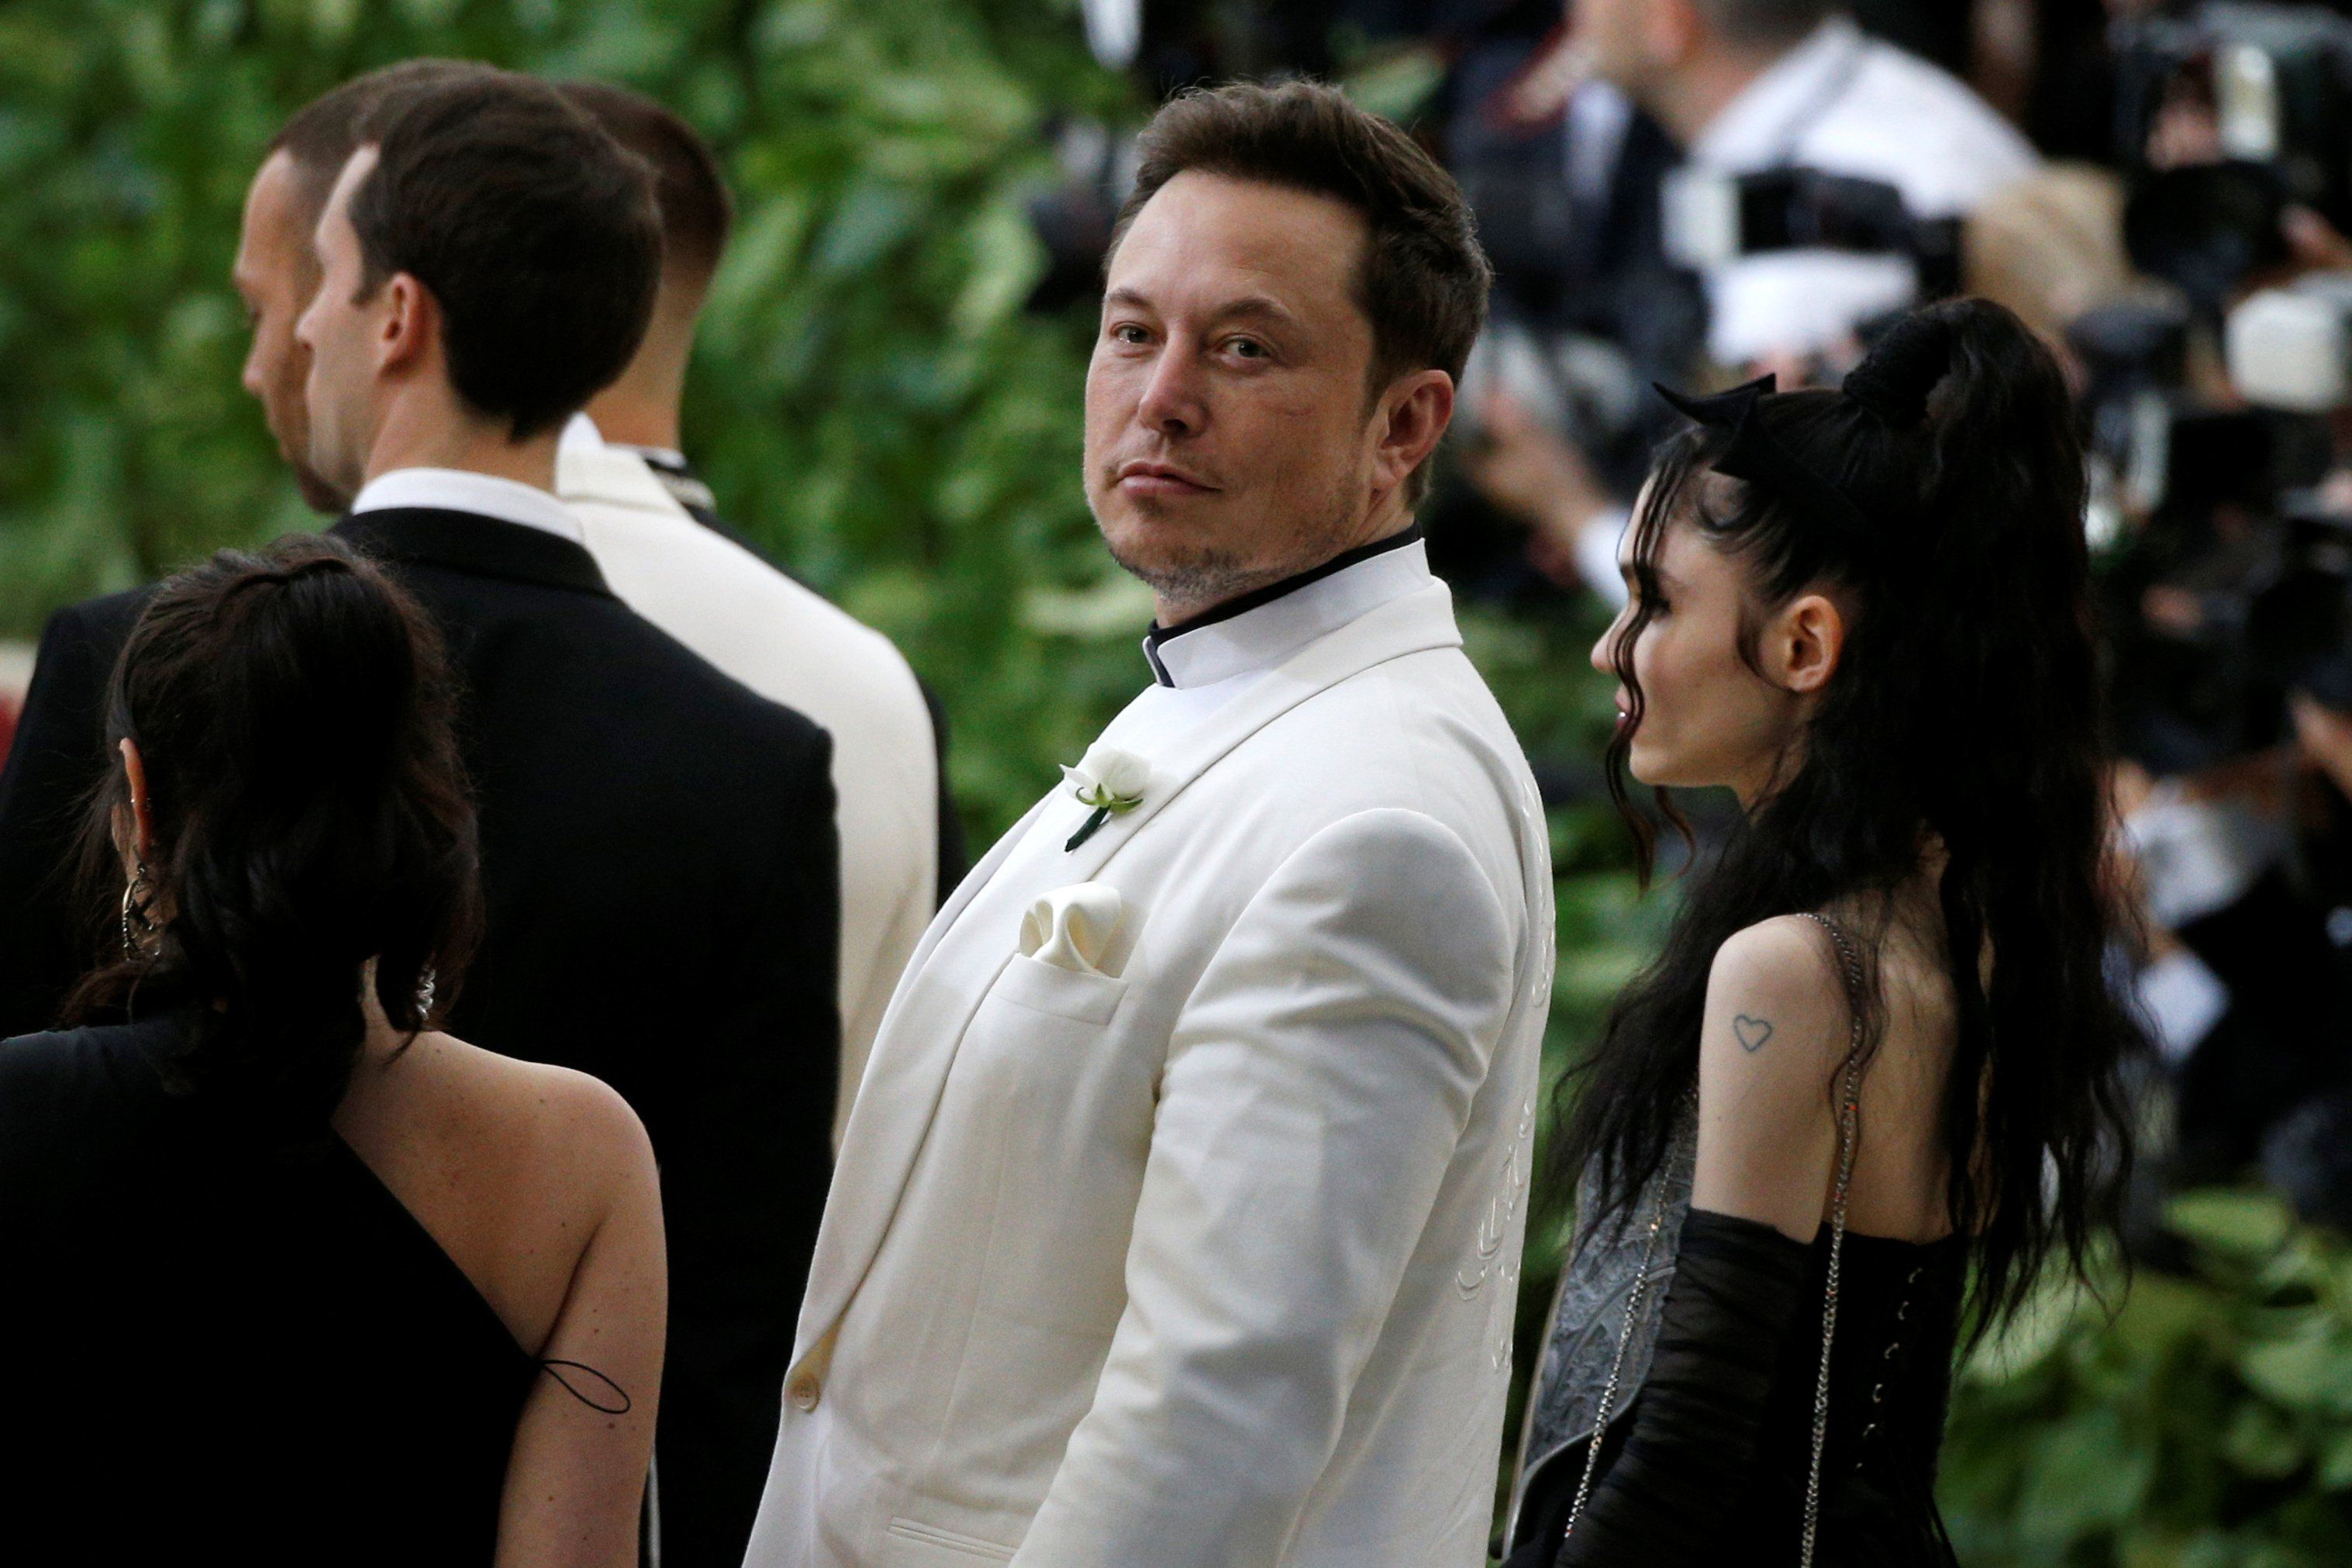 Elon Musk S Net Worth Just Soared To An All Time High After He Tweeted Tesla Could Go Private Elon Musk Elon